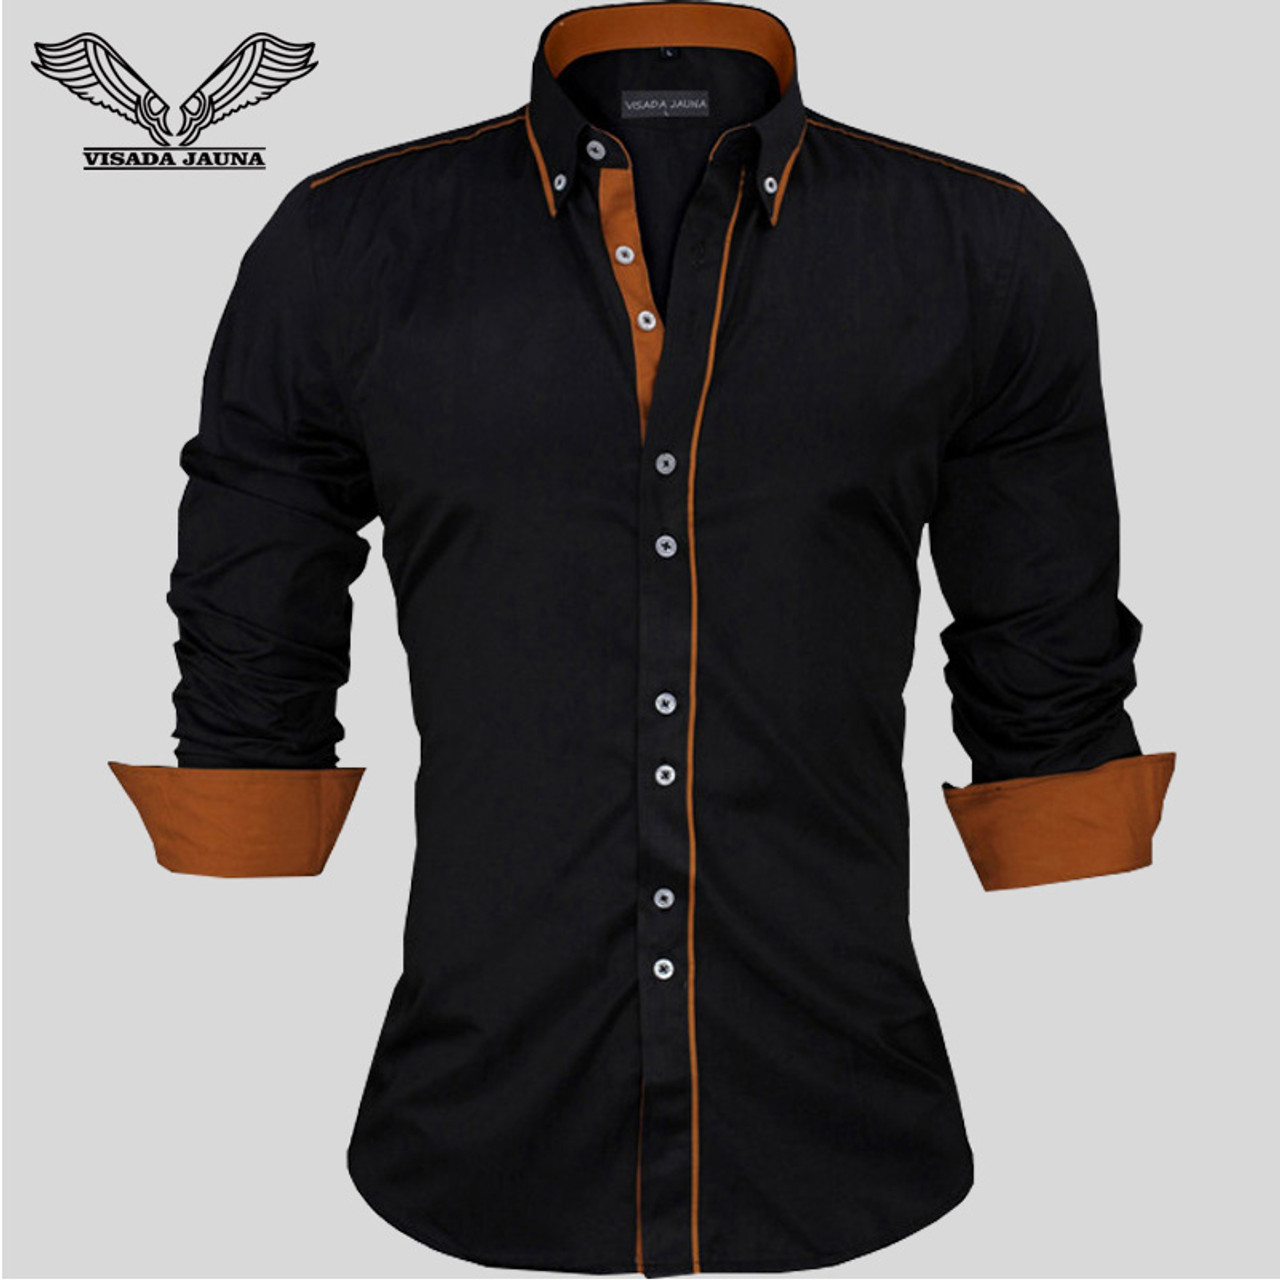 bb49c8302dbe ... VISADA JAUNA Men Shirts Europe Size New Arrivals Slim Fit Male Shirt  Solid Long Sleeve British ...